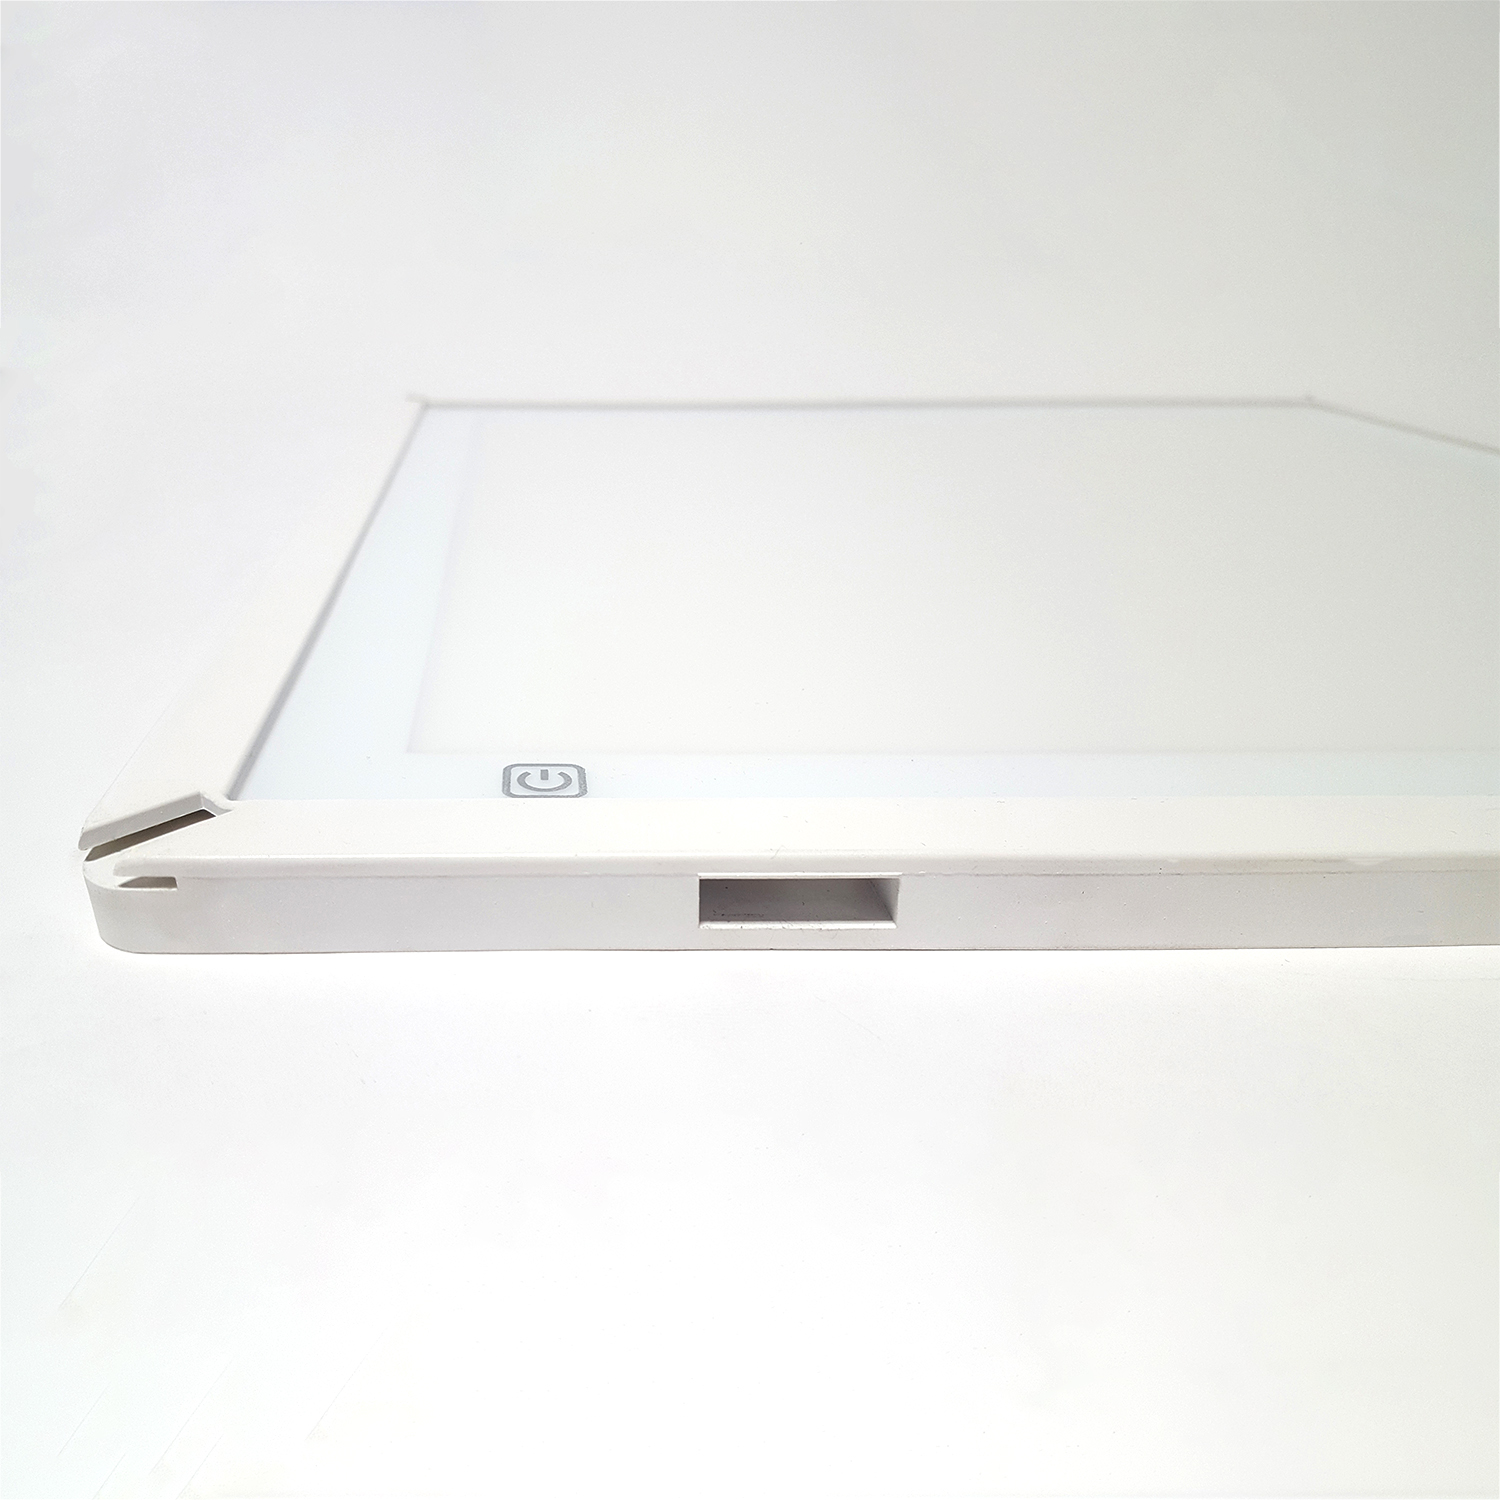 6-product-pro-led-light-table.jpg